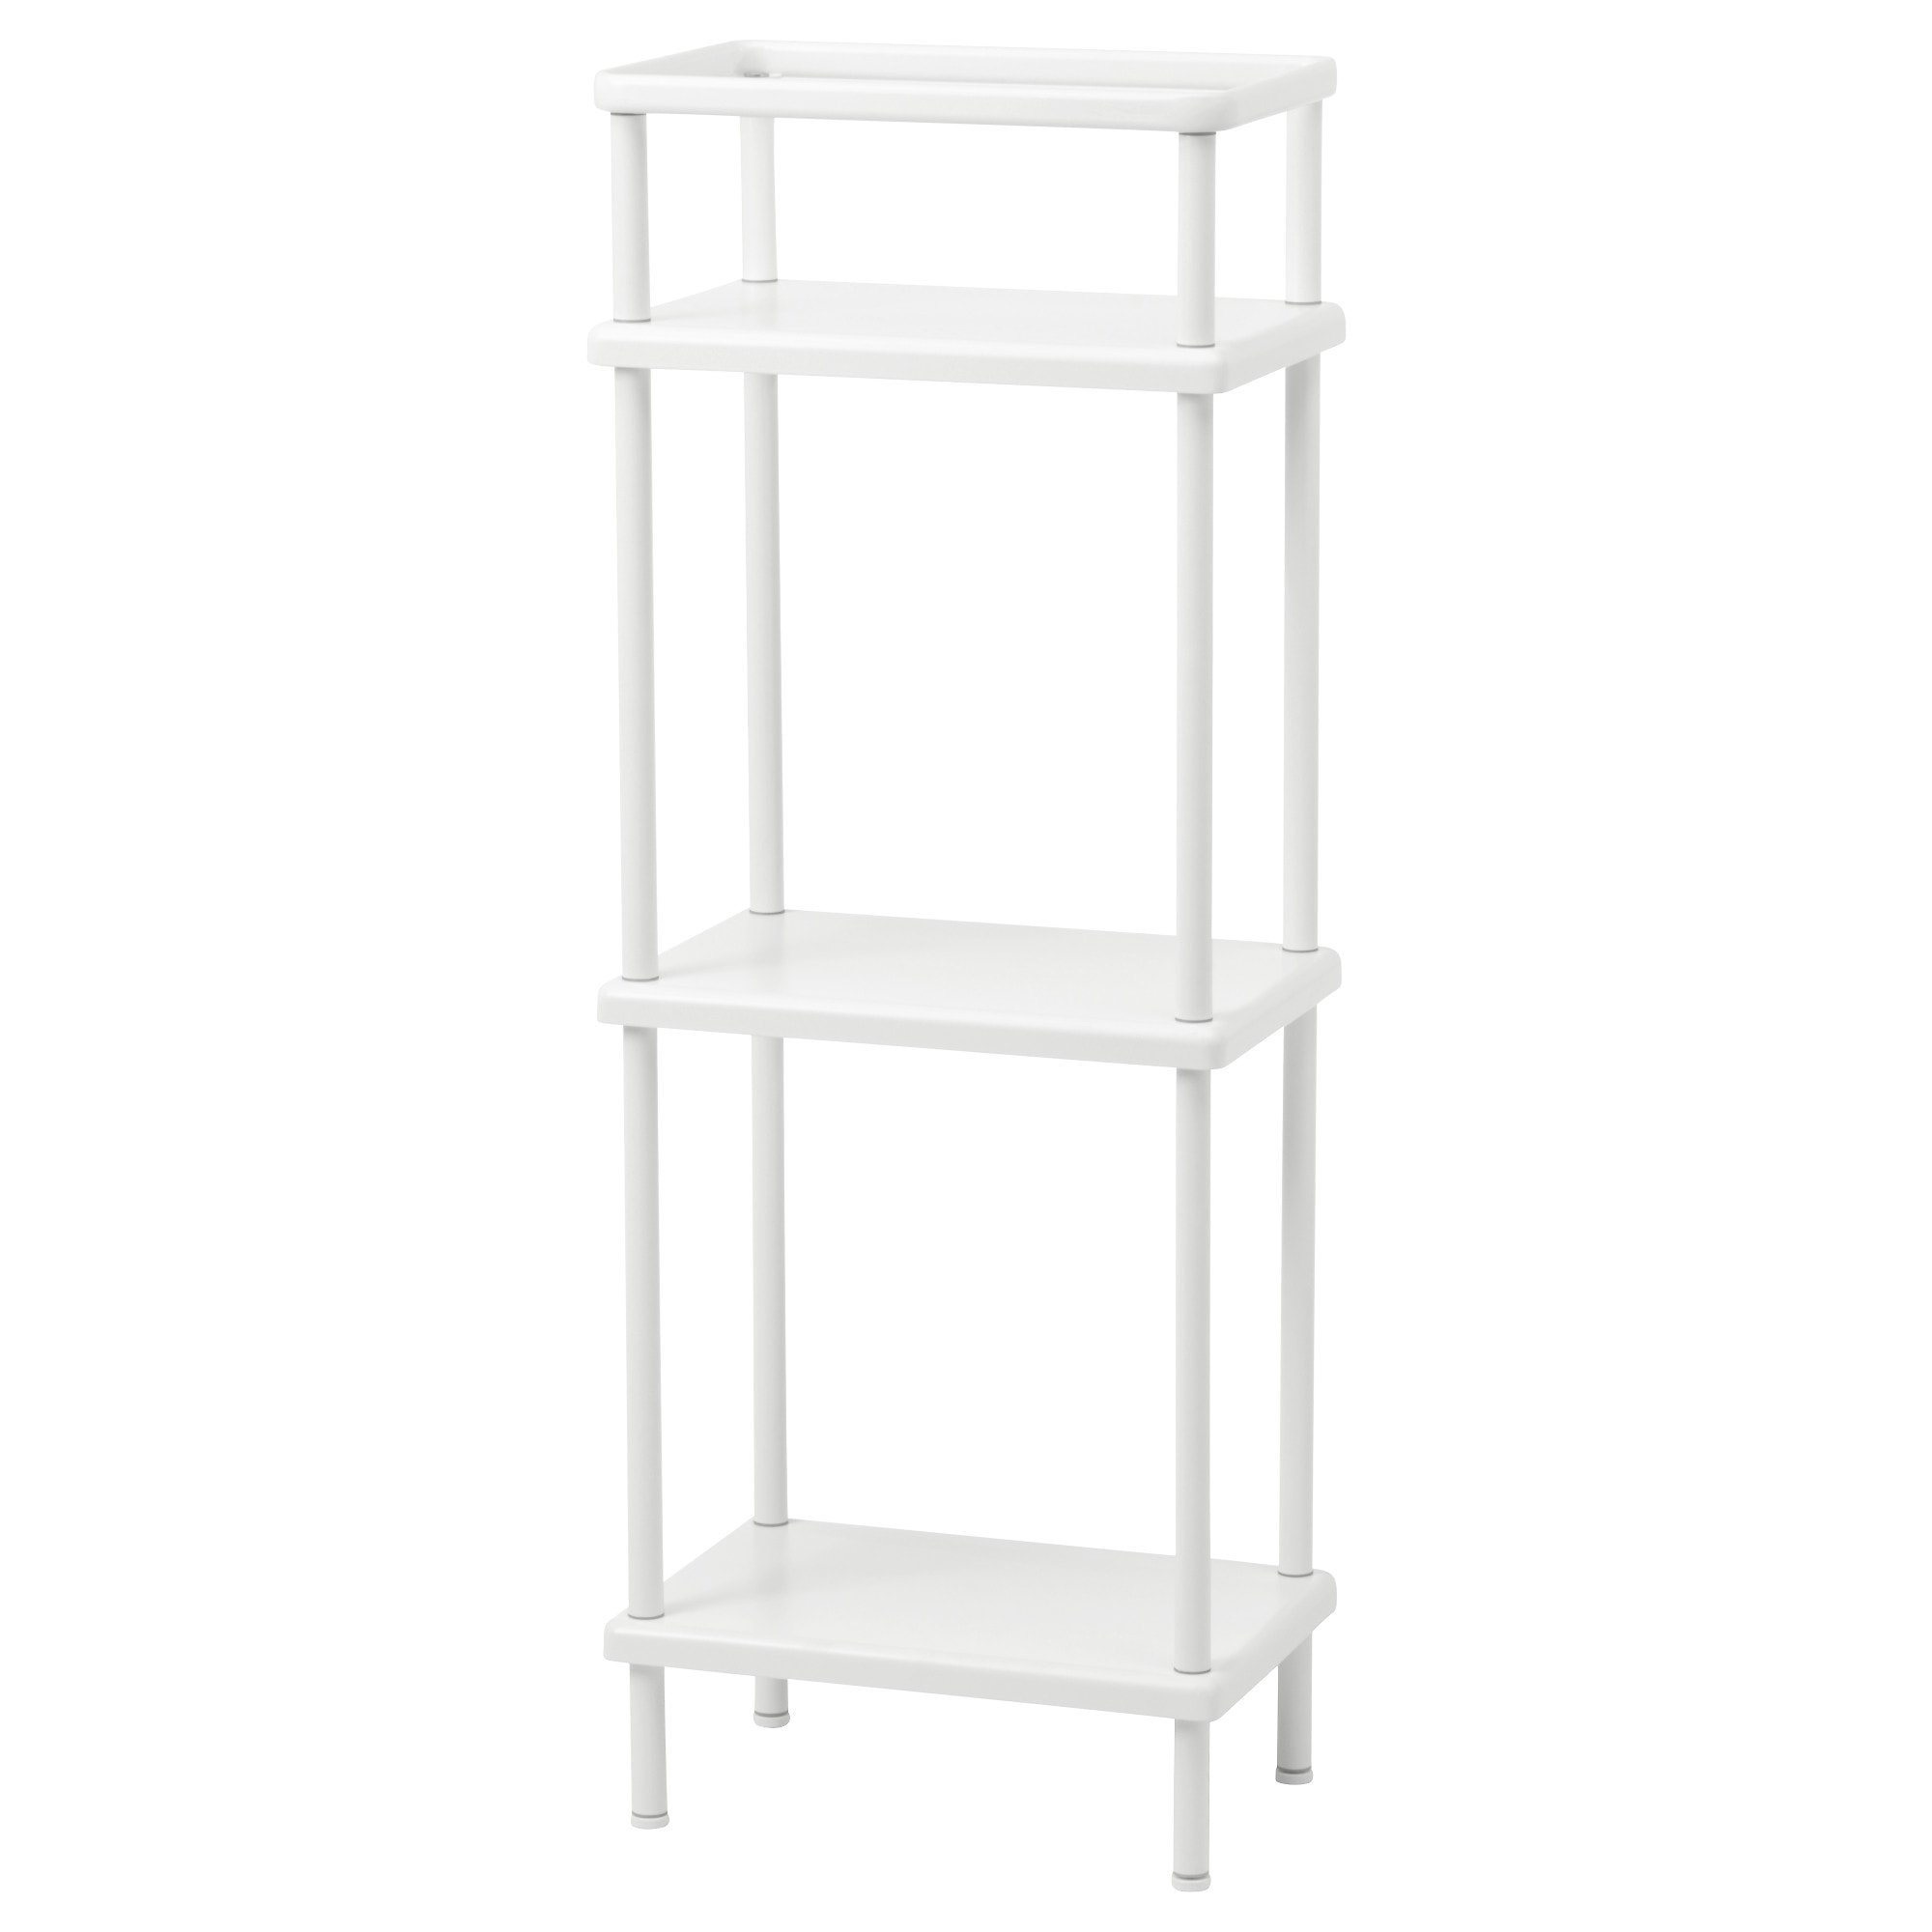 Dynan Shelf Unit With Towel Rail White Width 15 3 4 Depth